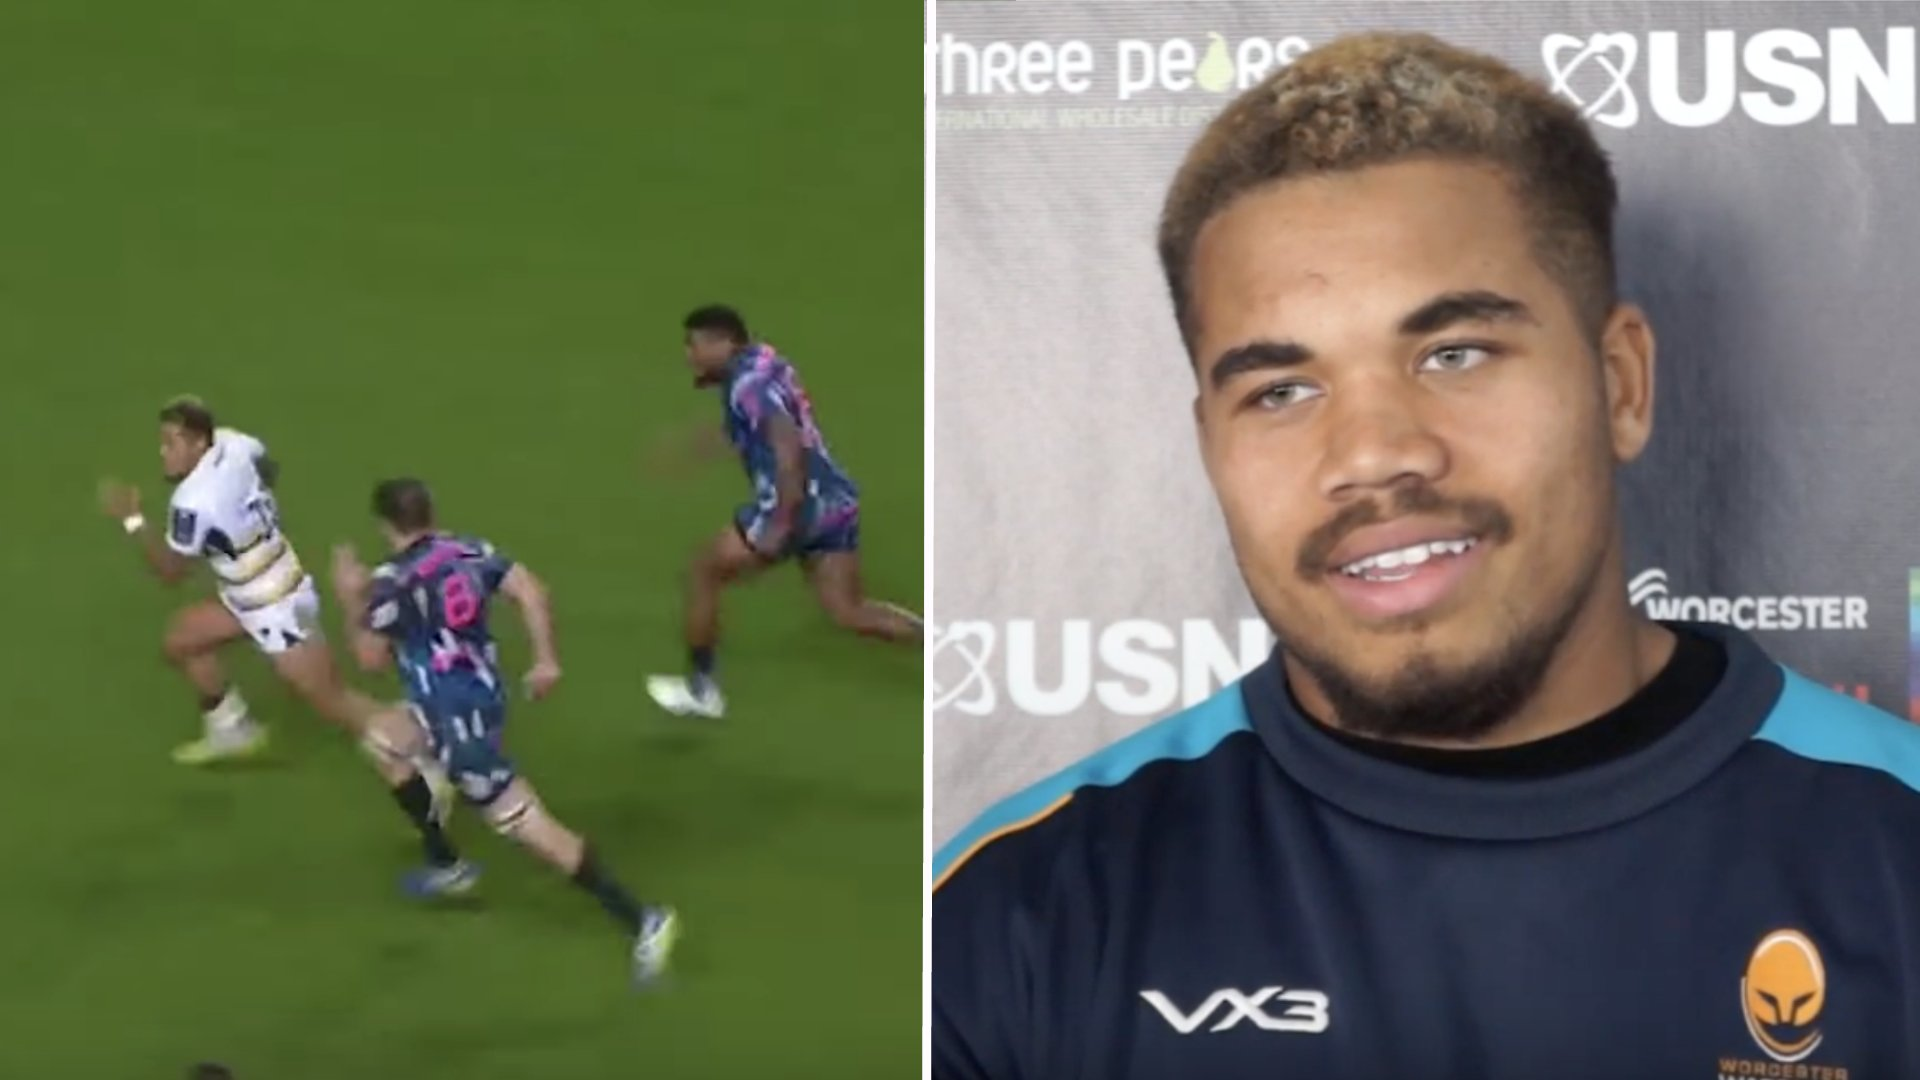 WATCH: The 19-year-old youngster who has been tearing it up in his first season at Worcester